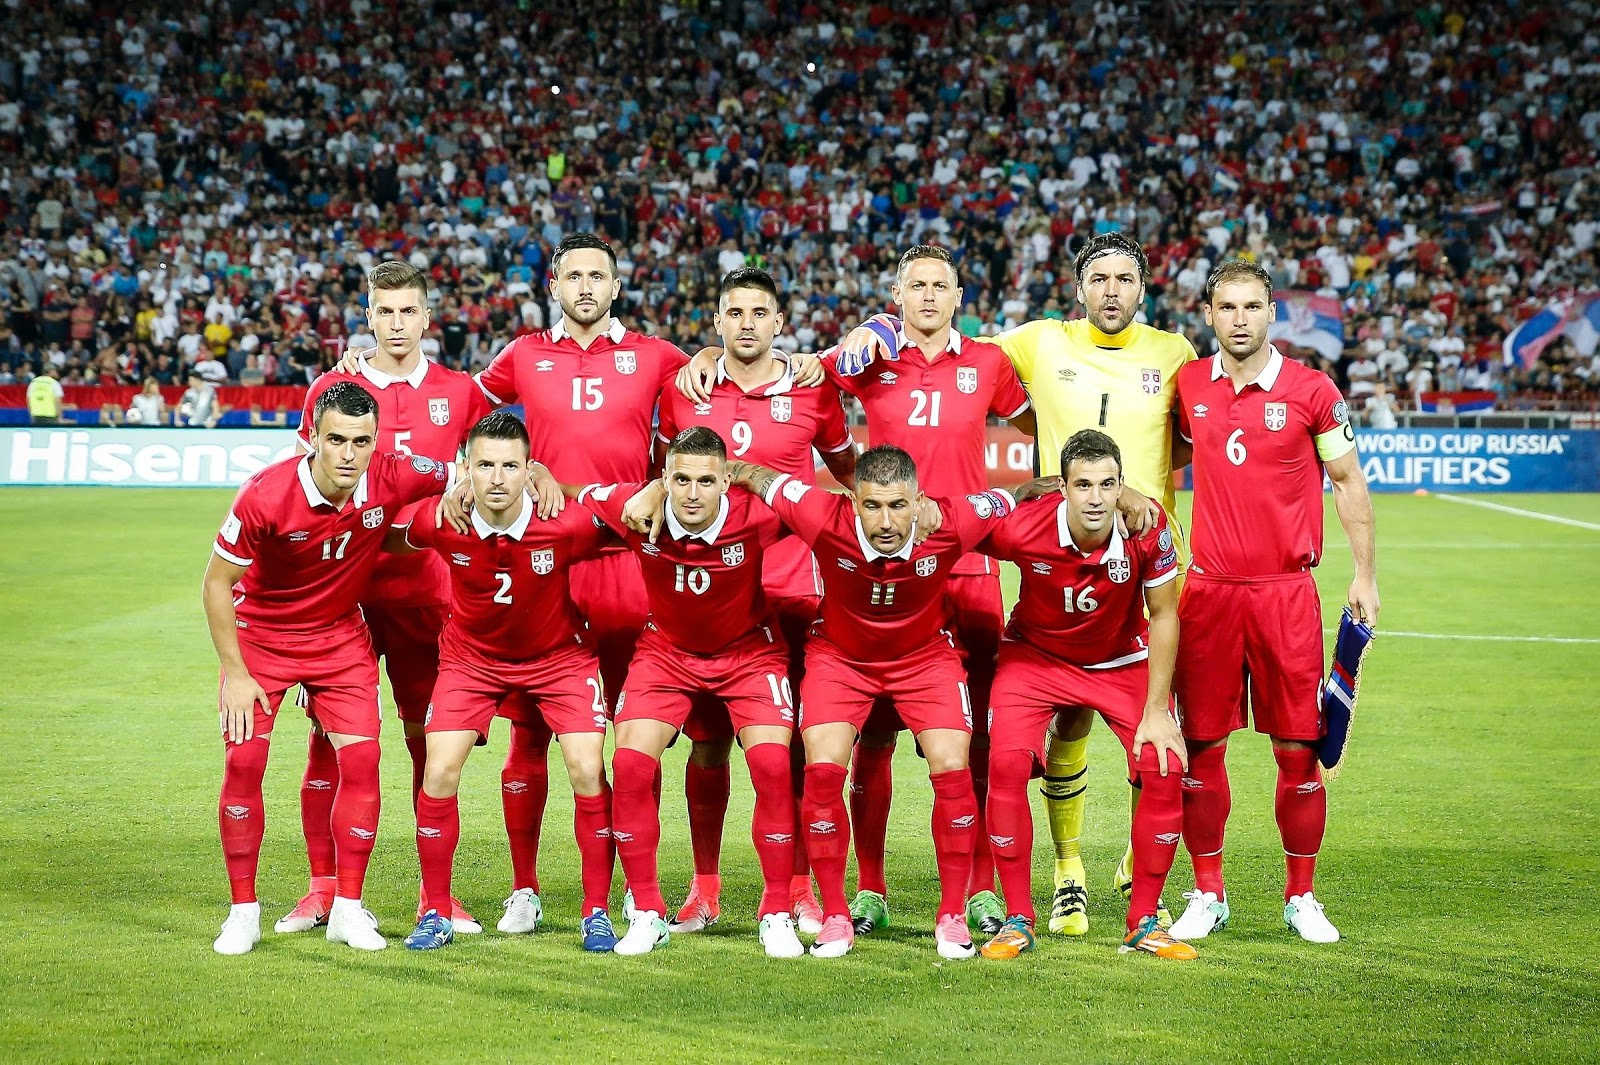 Information about Serbia Team 2018